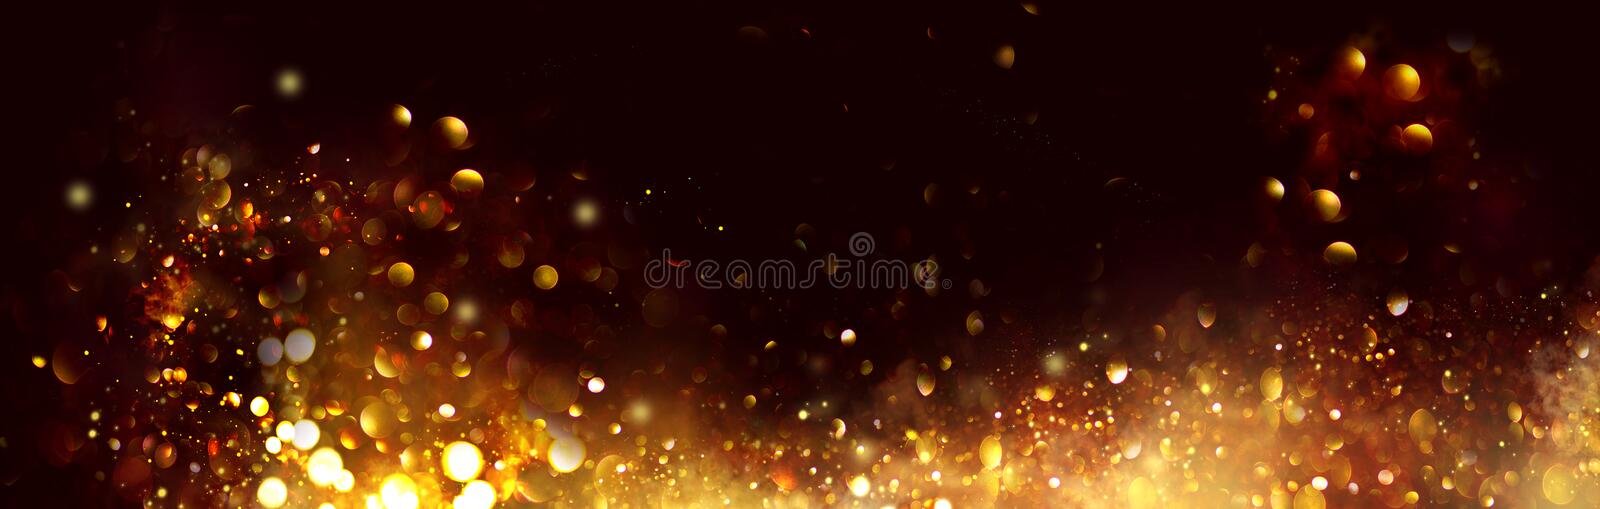 Golden Christmas and New Year glittering stars swirl on black bokeh background, backdrop with sparkling golden stars royalty free stock photos